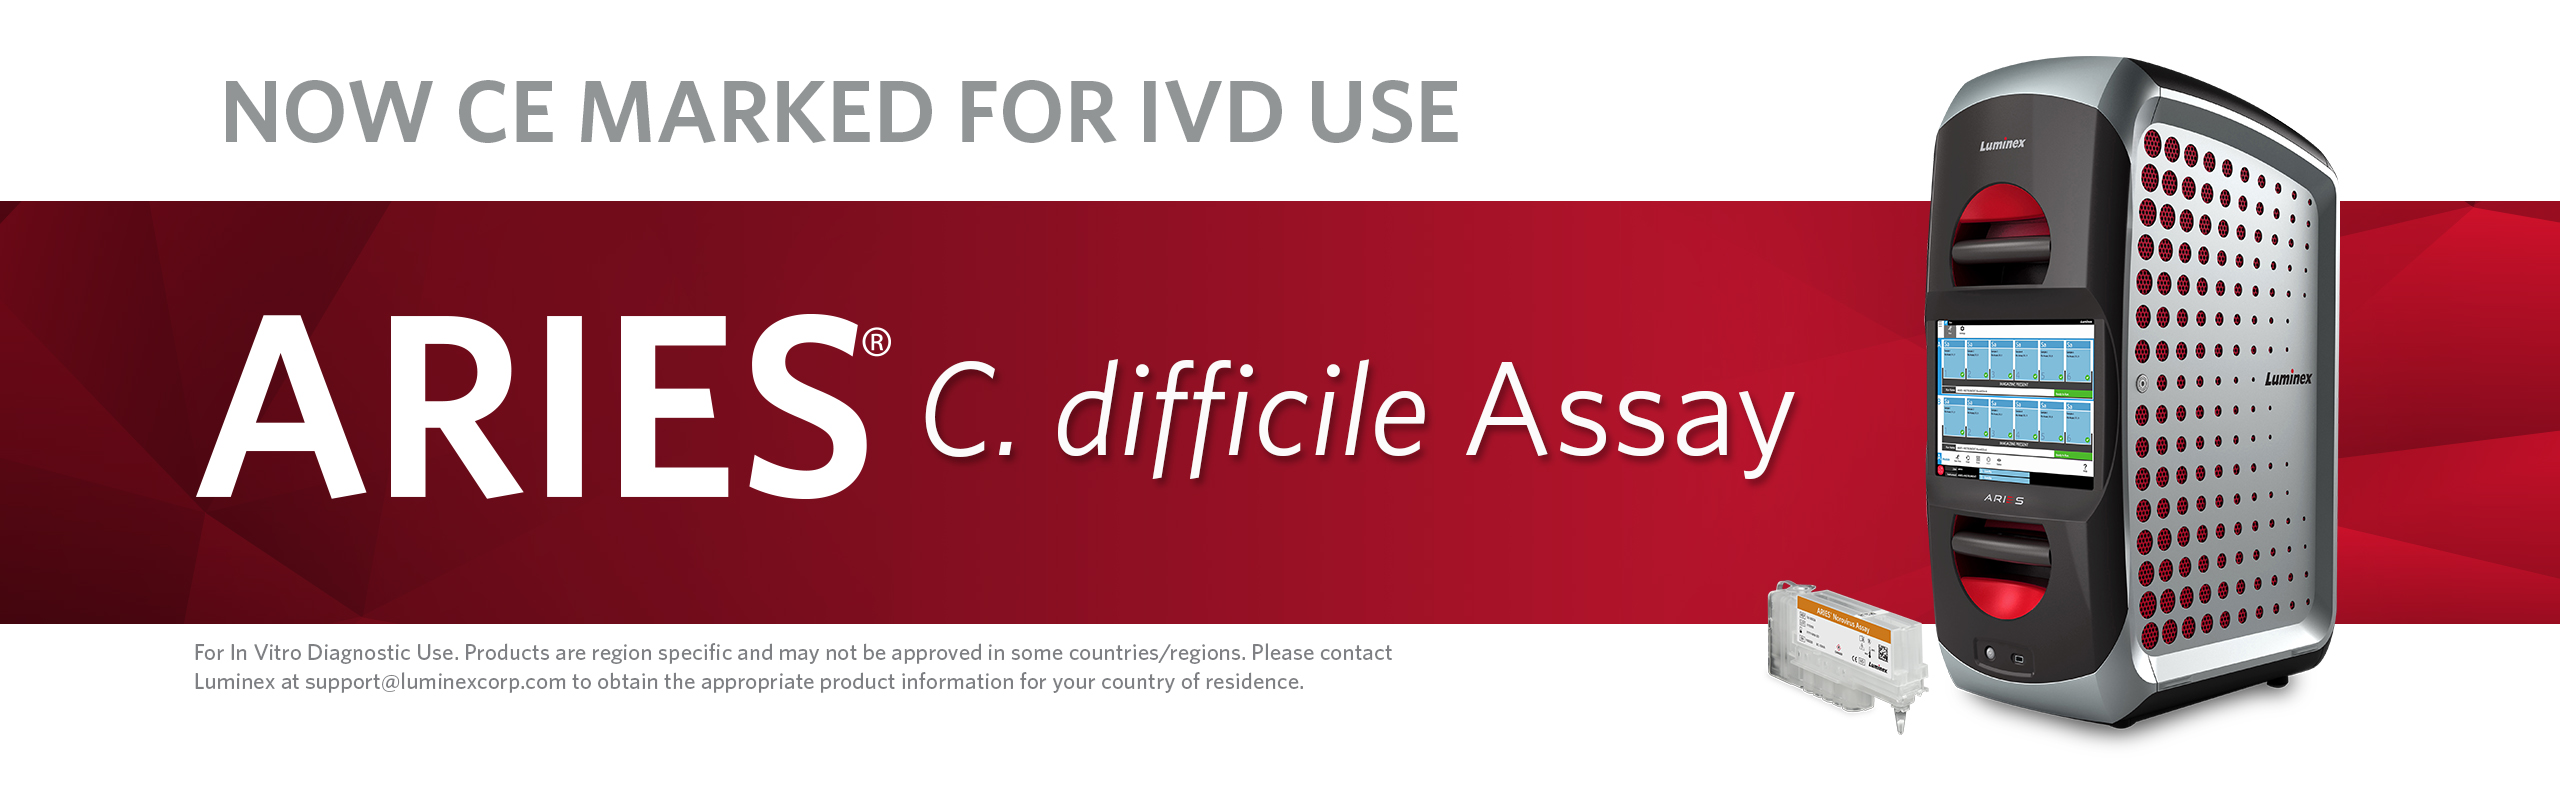 ARIES® C. difficile Assay | CE Marked for IVD Use